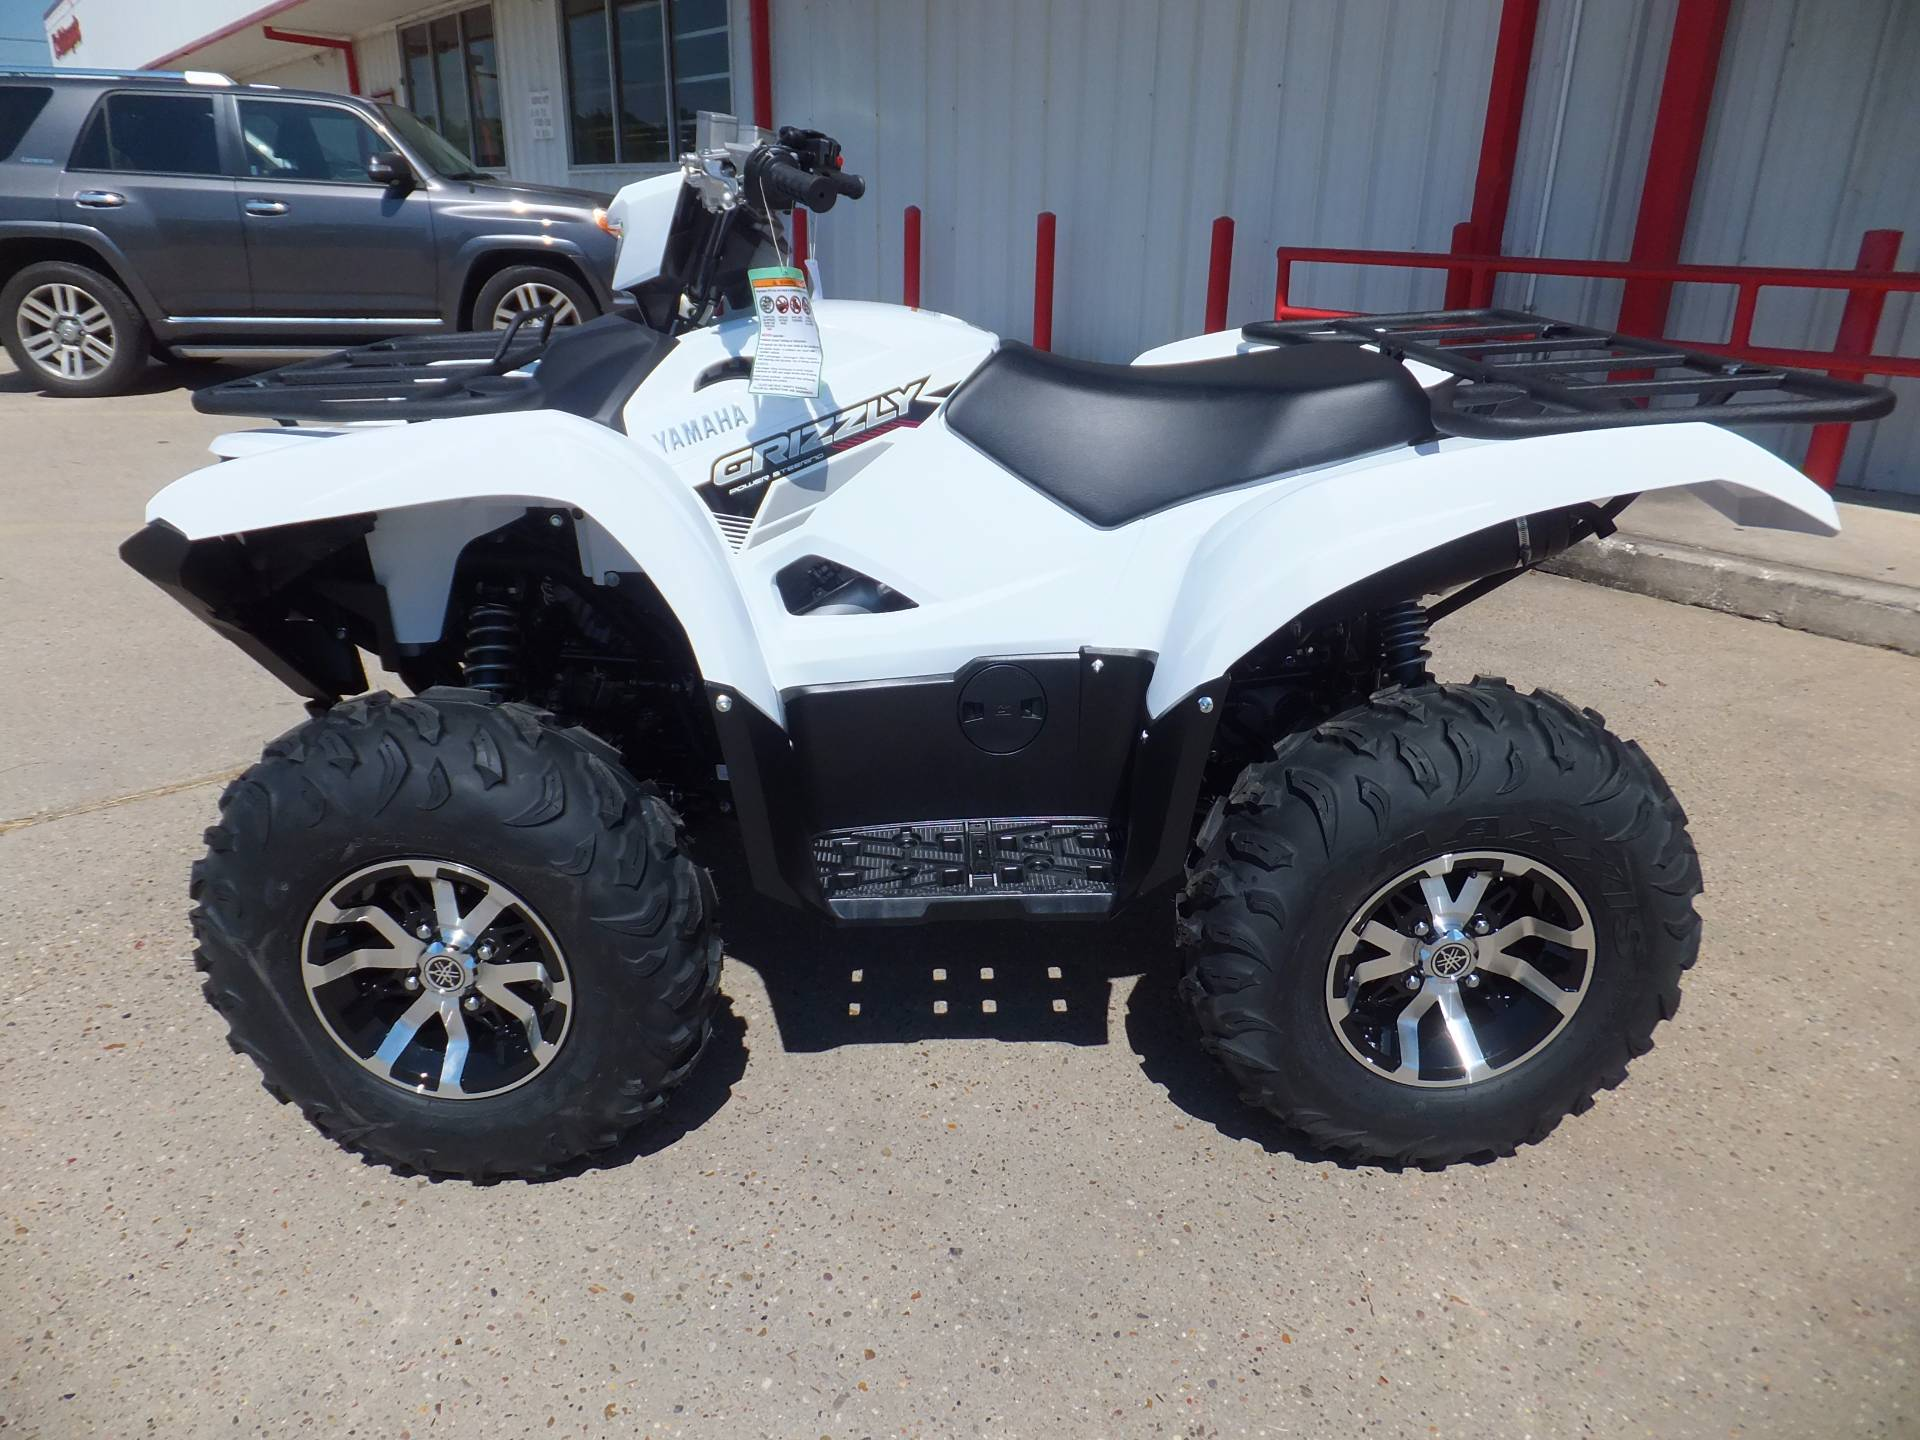 New 2017 yamaha grizzly eps atvs in humble tx for Yamaha grizzly atv